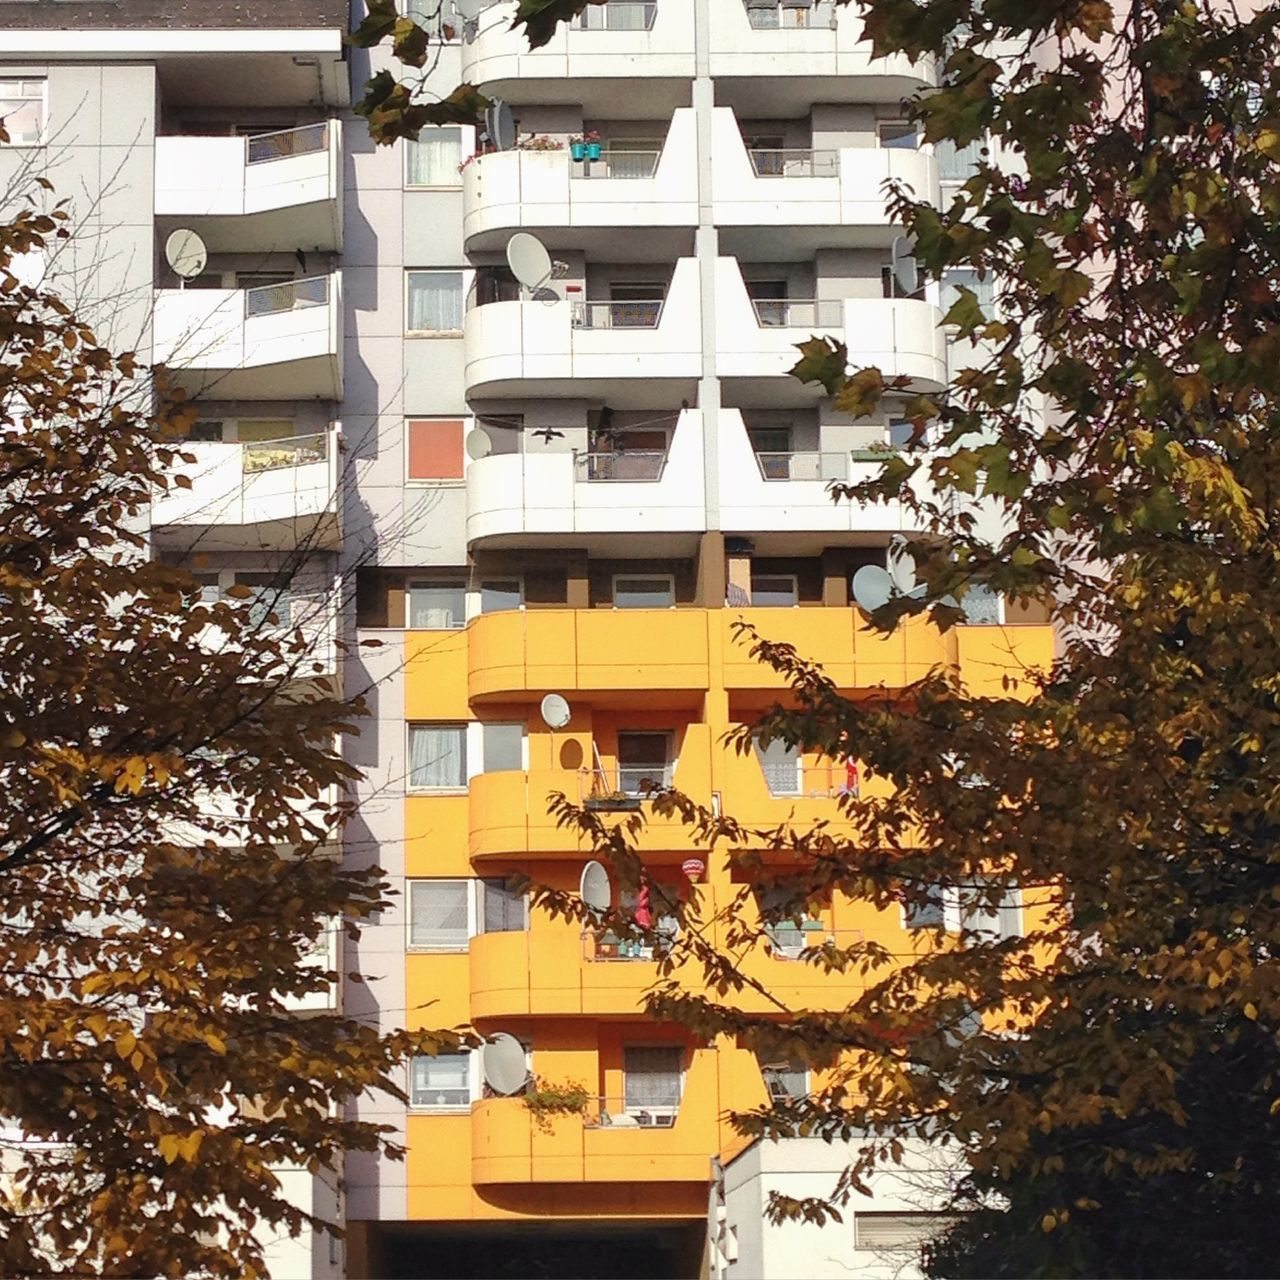 Abstract Architecture Architecture Autumn Colors Balcony Berlin Photography Berliner Ansichten Berlinstagram Building Exterior Built Structure Colour Of Life Façade Kreuzberg Light Low Angle View Minimal Modern Architecture Nature No People Outdoors Pattern Plattenbau Structure Tree Yellow